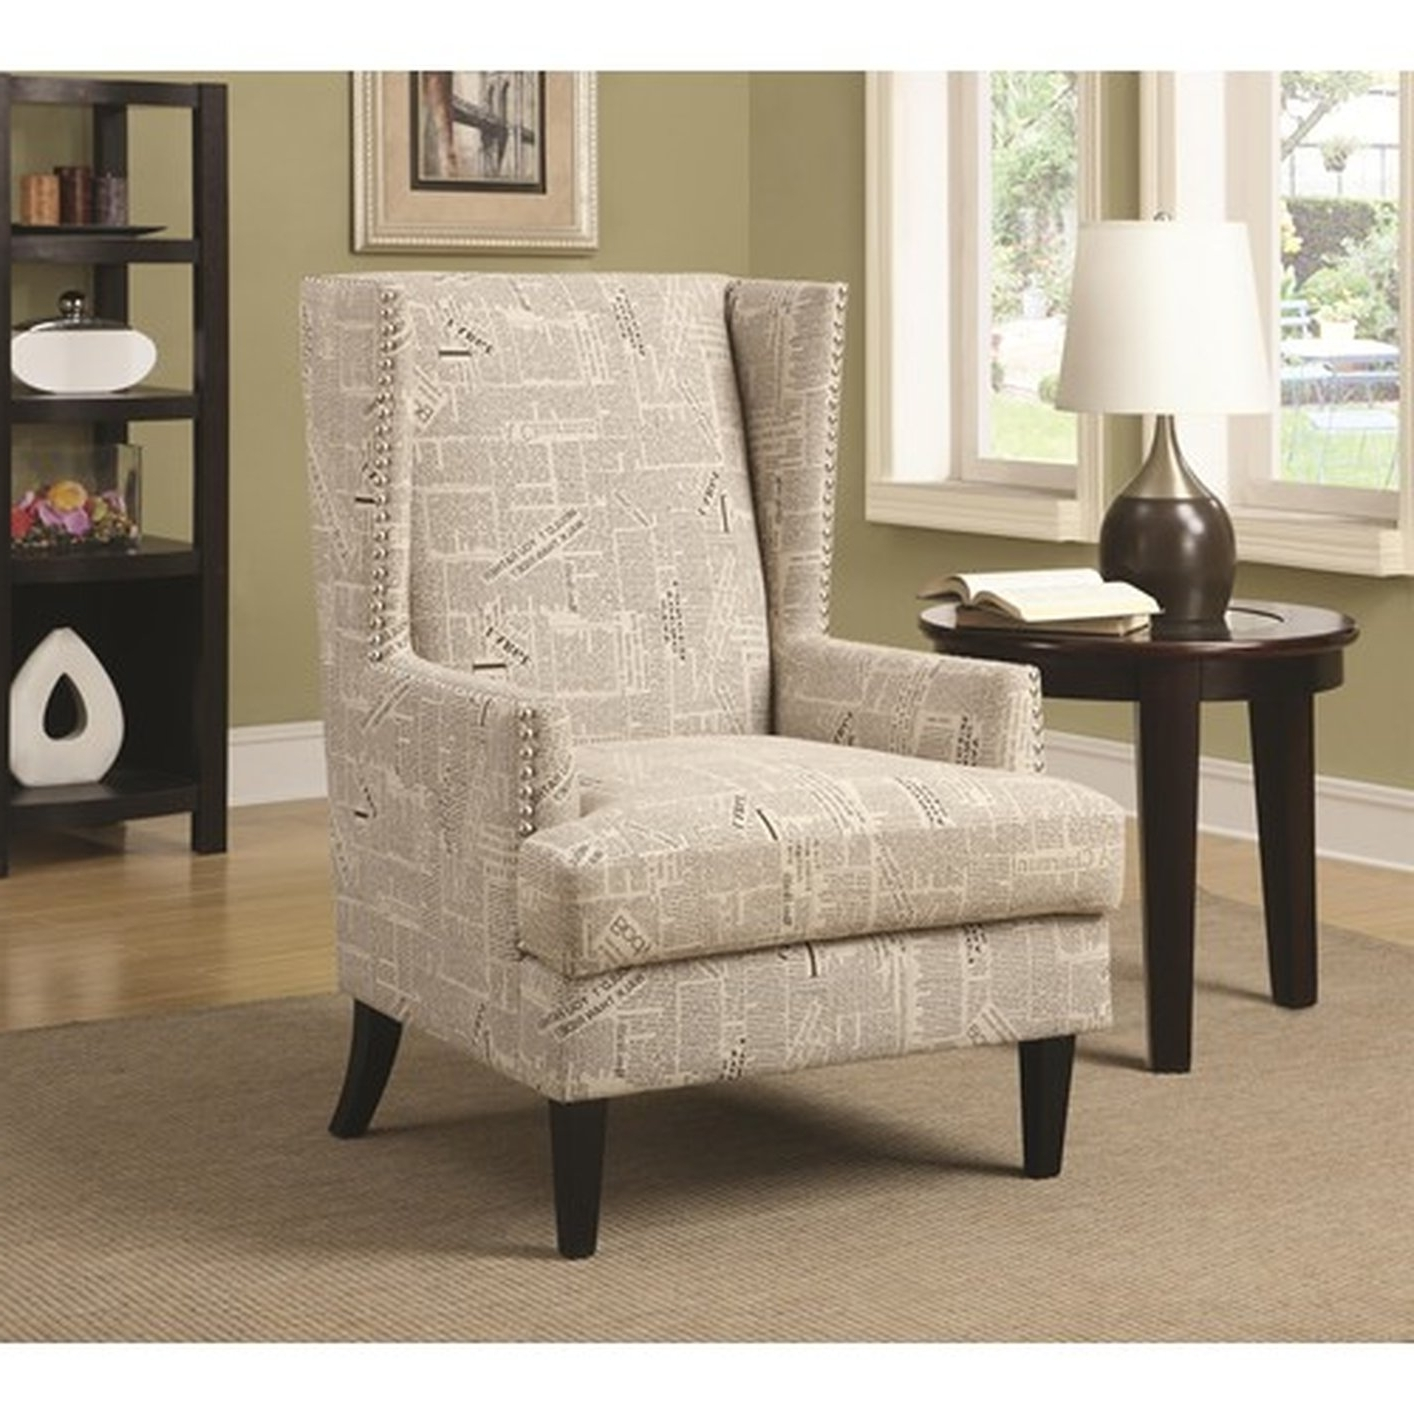 Most Recently Released Accent Sofa Chair – House Decorations Within Accent Sofa Chairs (View 18 of 20)